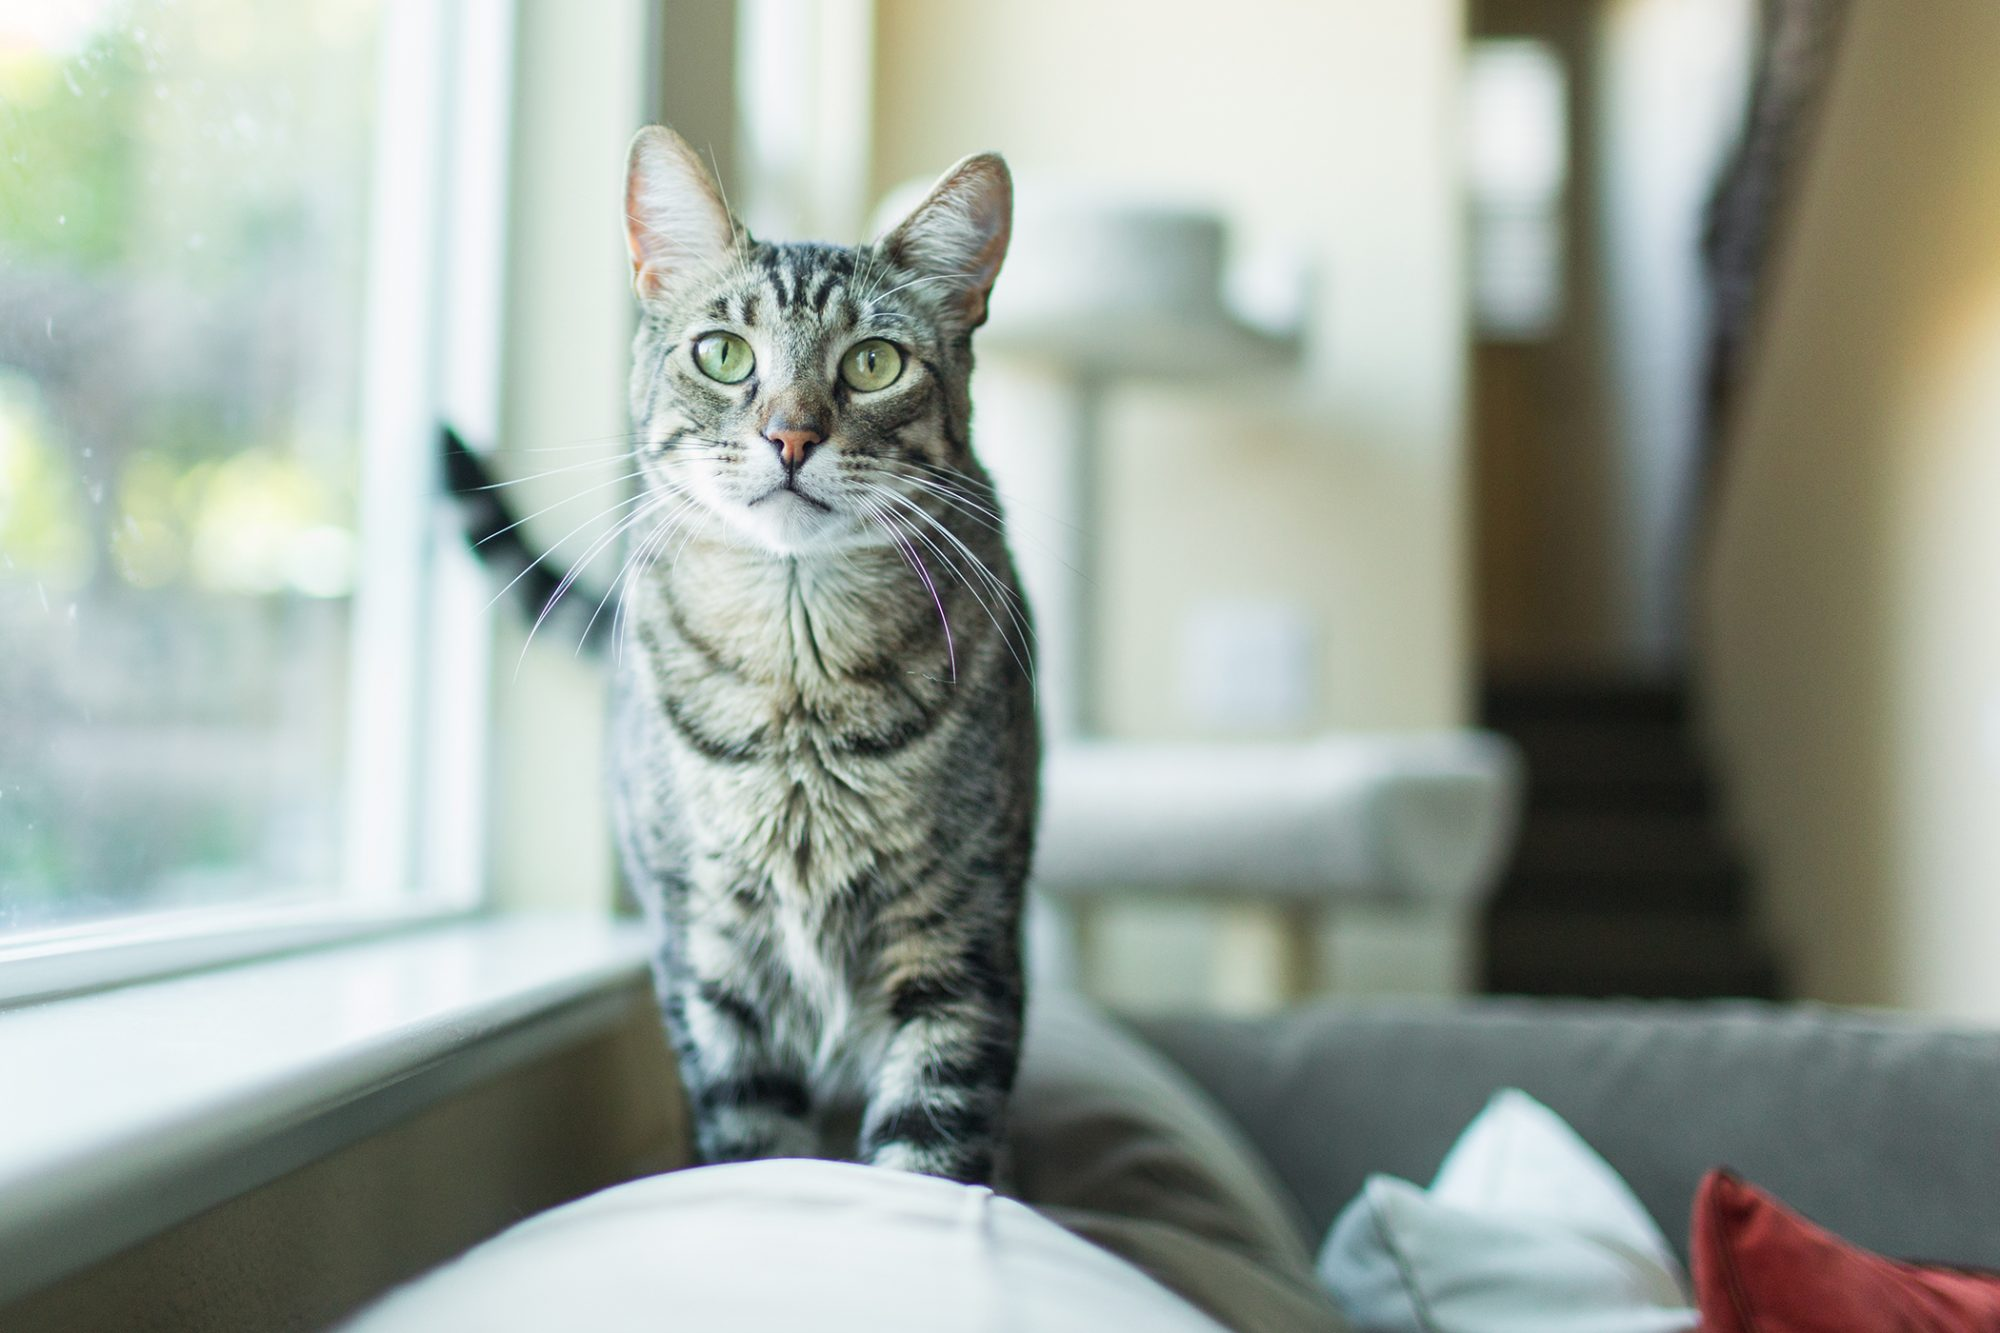 Cool-toned photo of grey and black striped cat walking on top of couch cushions